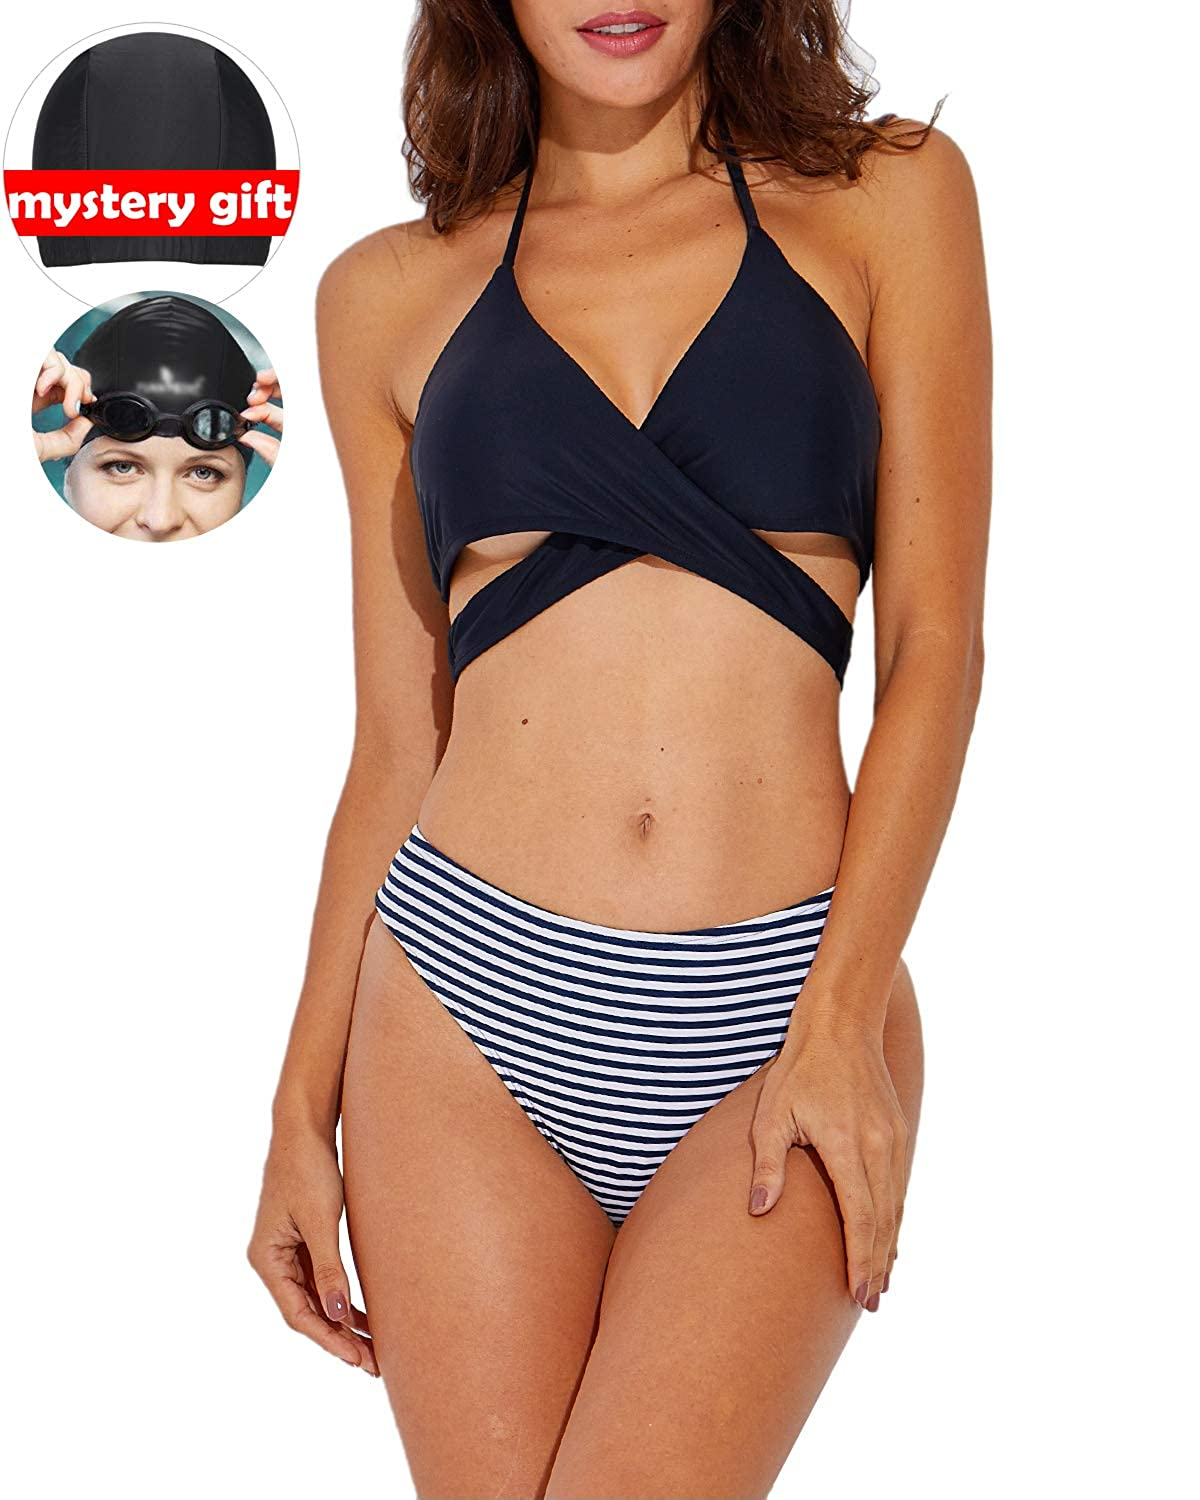 f2d56f7890eb23 Amazon.com: Ceyue Womens Swimsuits Two Piece Plus Size Swimsuits for Women Sexy  High Waisted Strappy Bikini Sets Bathing Suits: Clothing